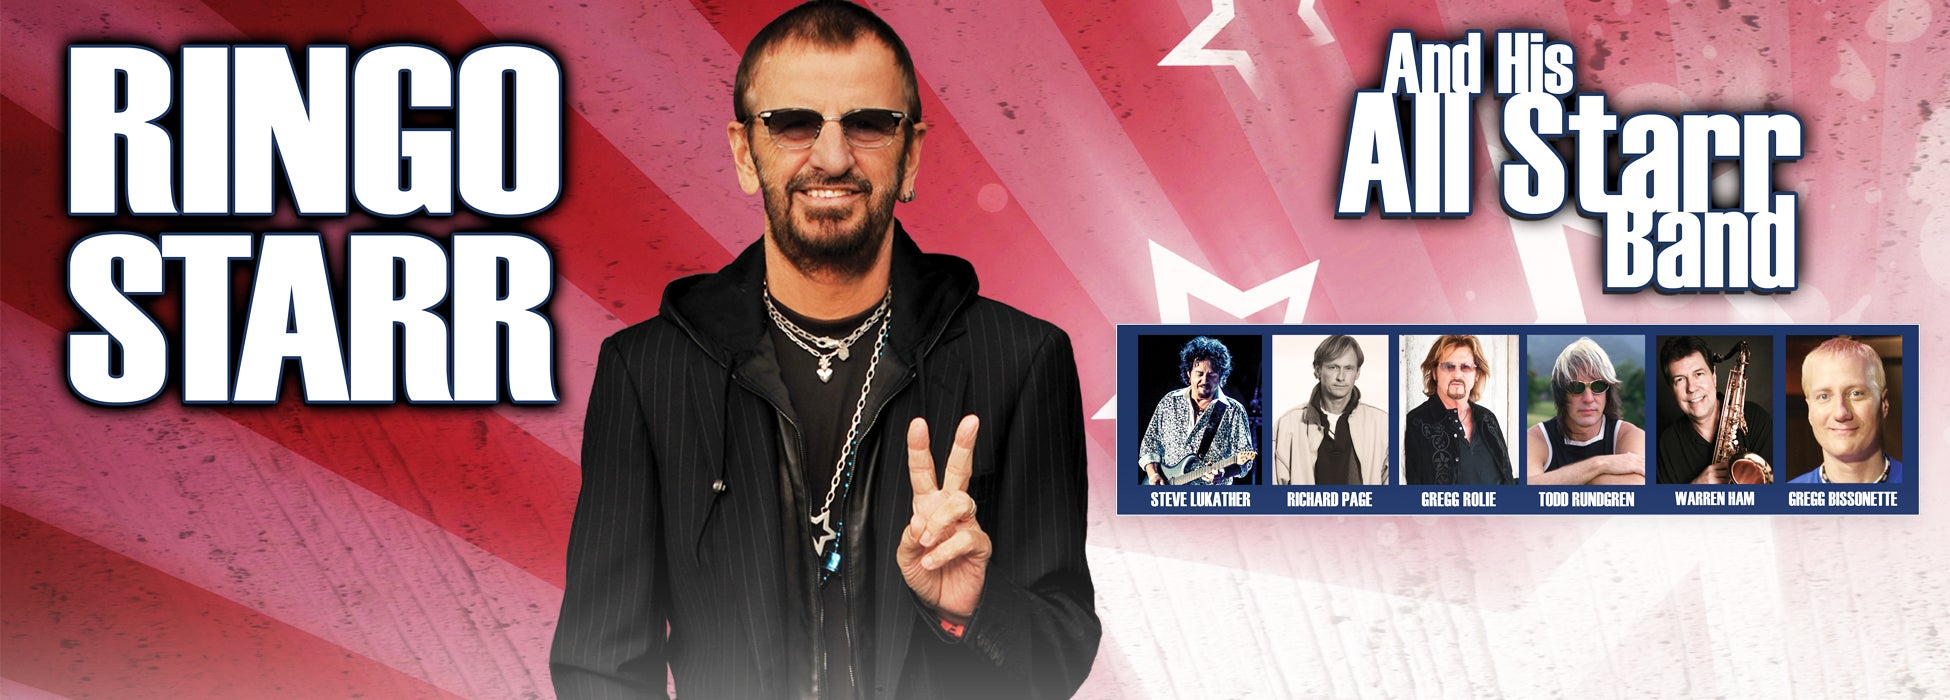 Ringo Starr_Norfolk_1950x700_Website.jpg